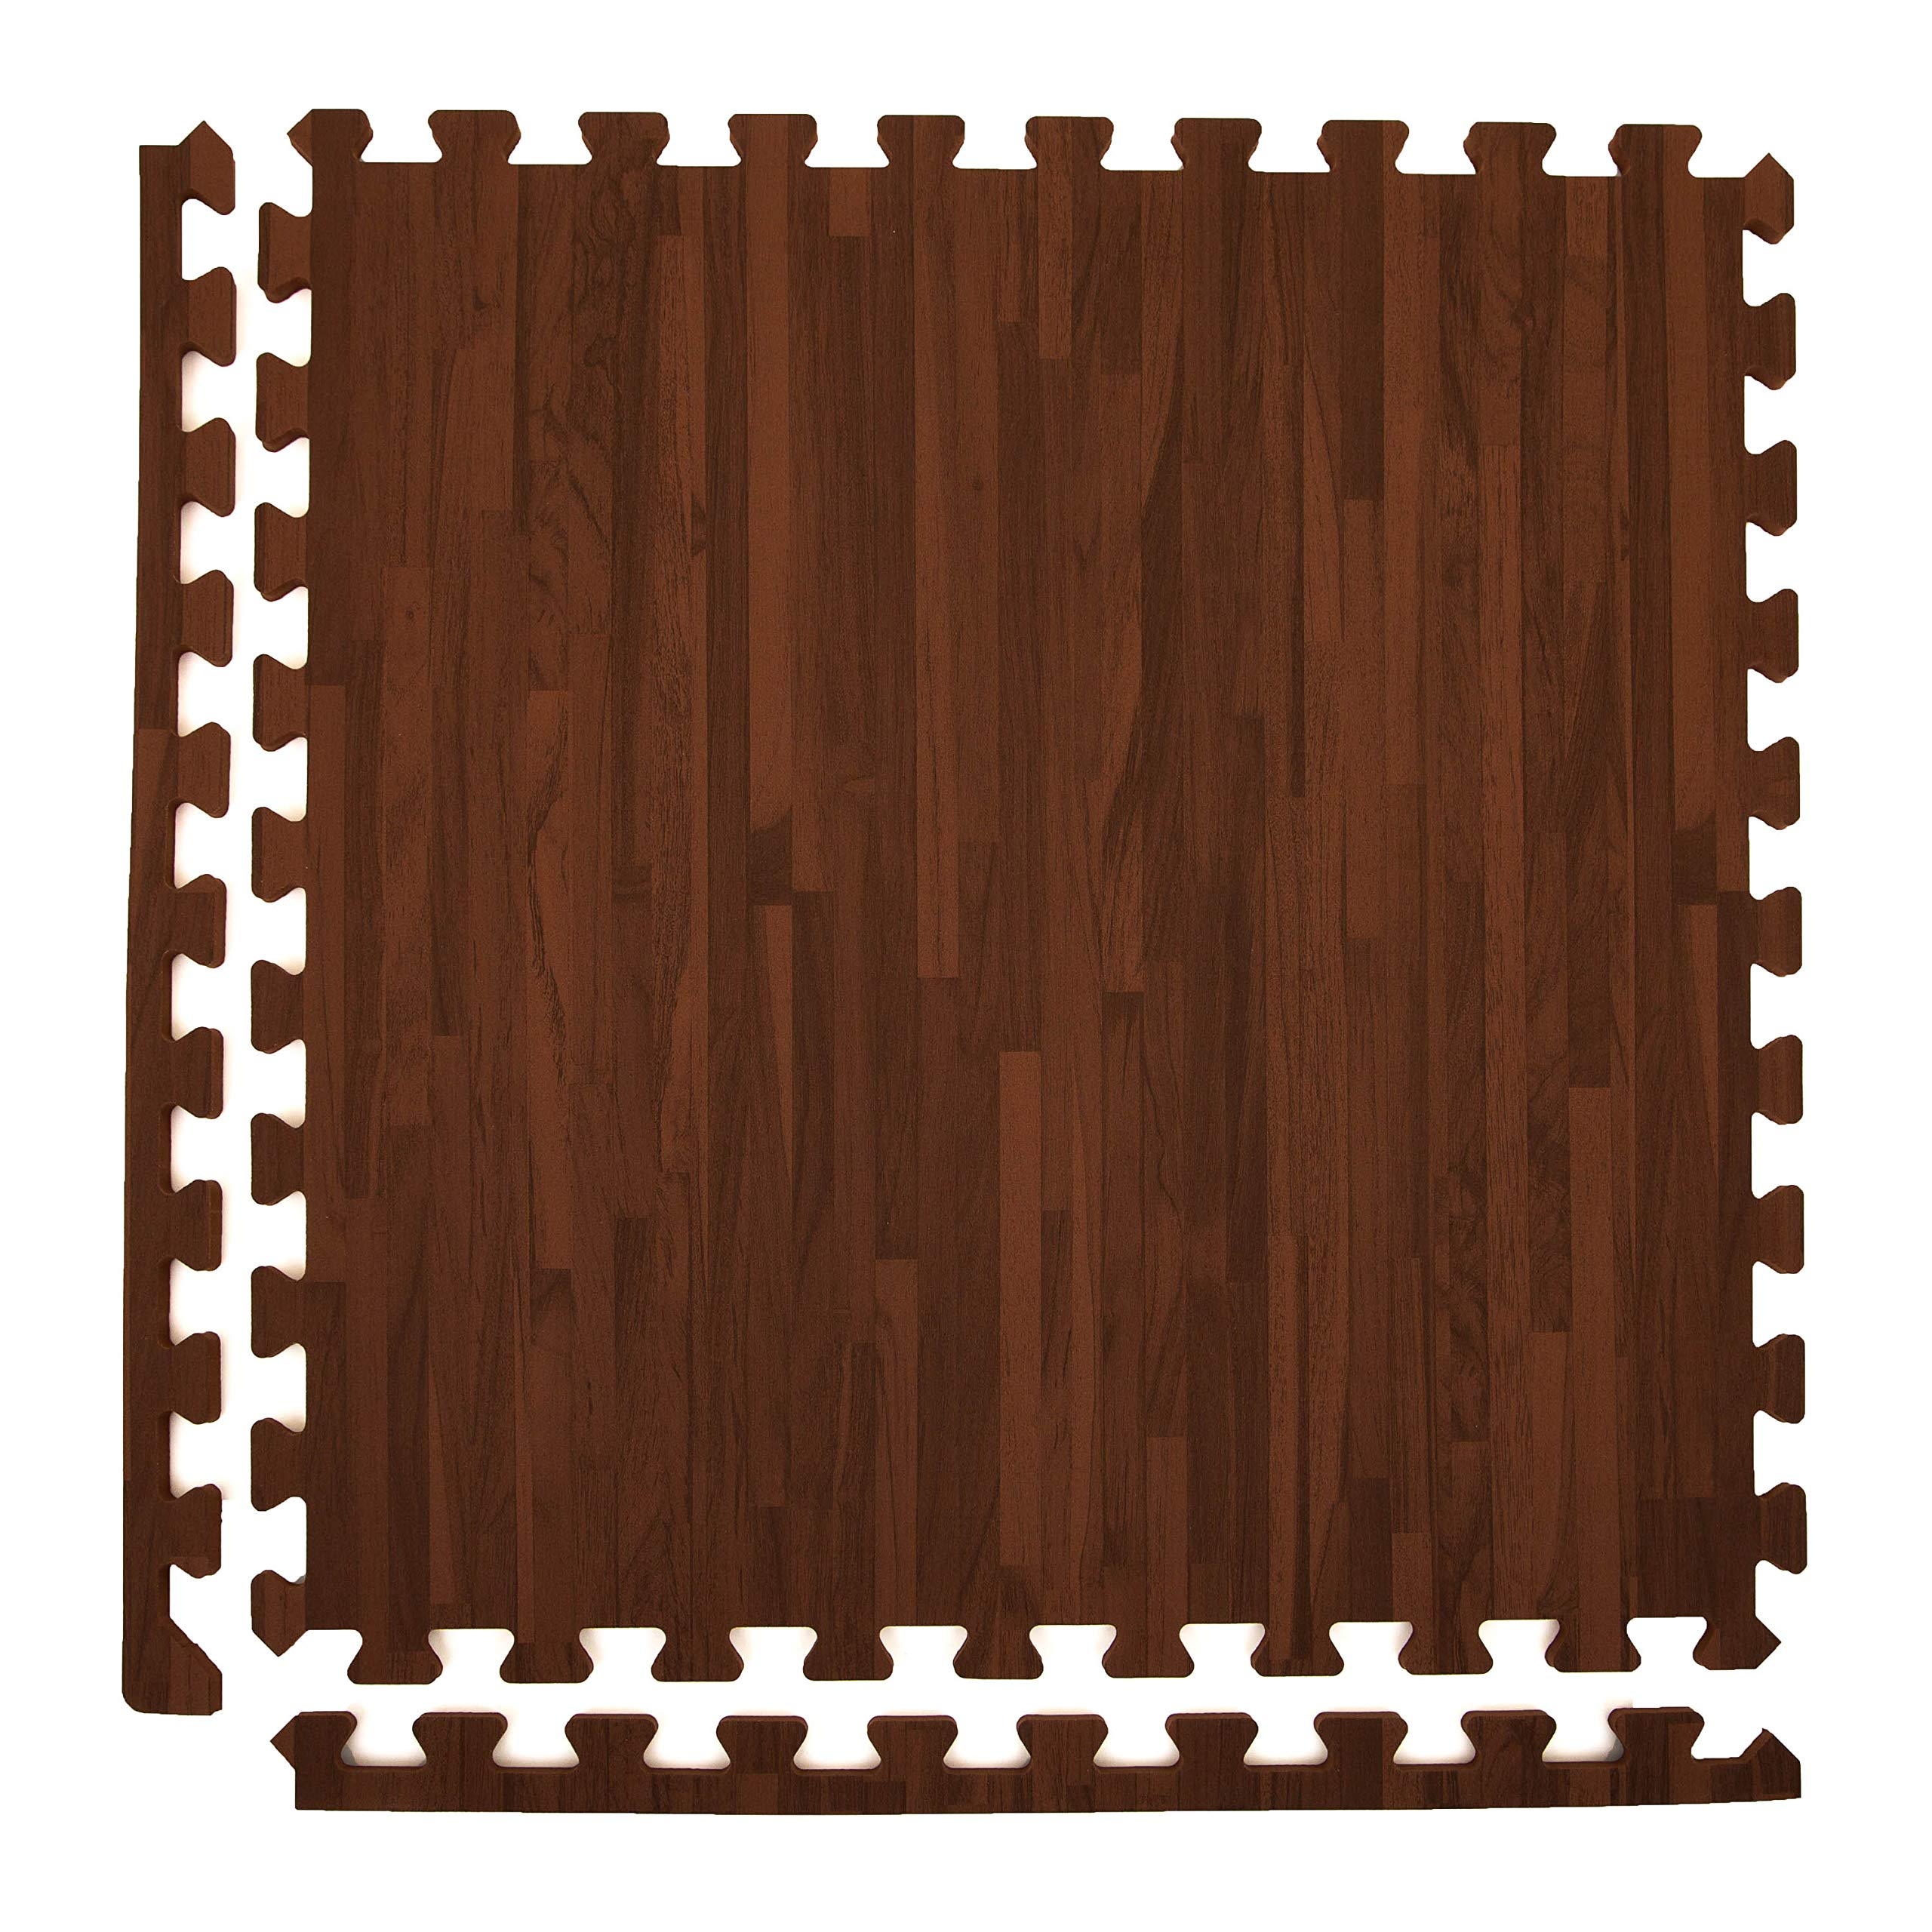 Incstores - Premium Soft Wood Interlocking Foam Tiles (Cherry, 6 Tiles) - Excellent for Trade Show Flooring, Exhibit Flooring, Display Flooring, Conventions, Living Areas, Play Rooms, Yoga and Pilates